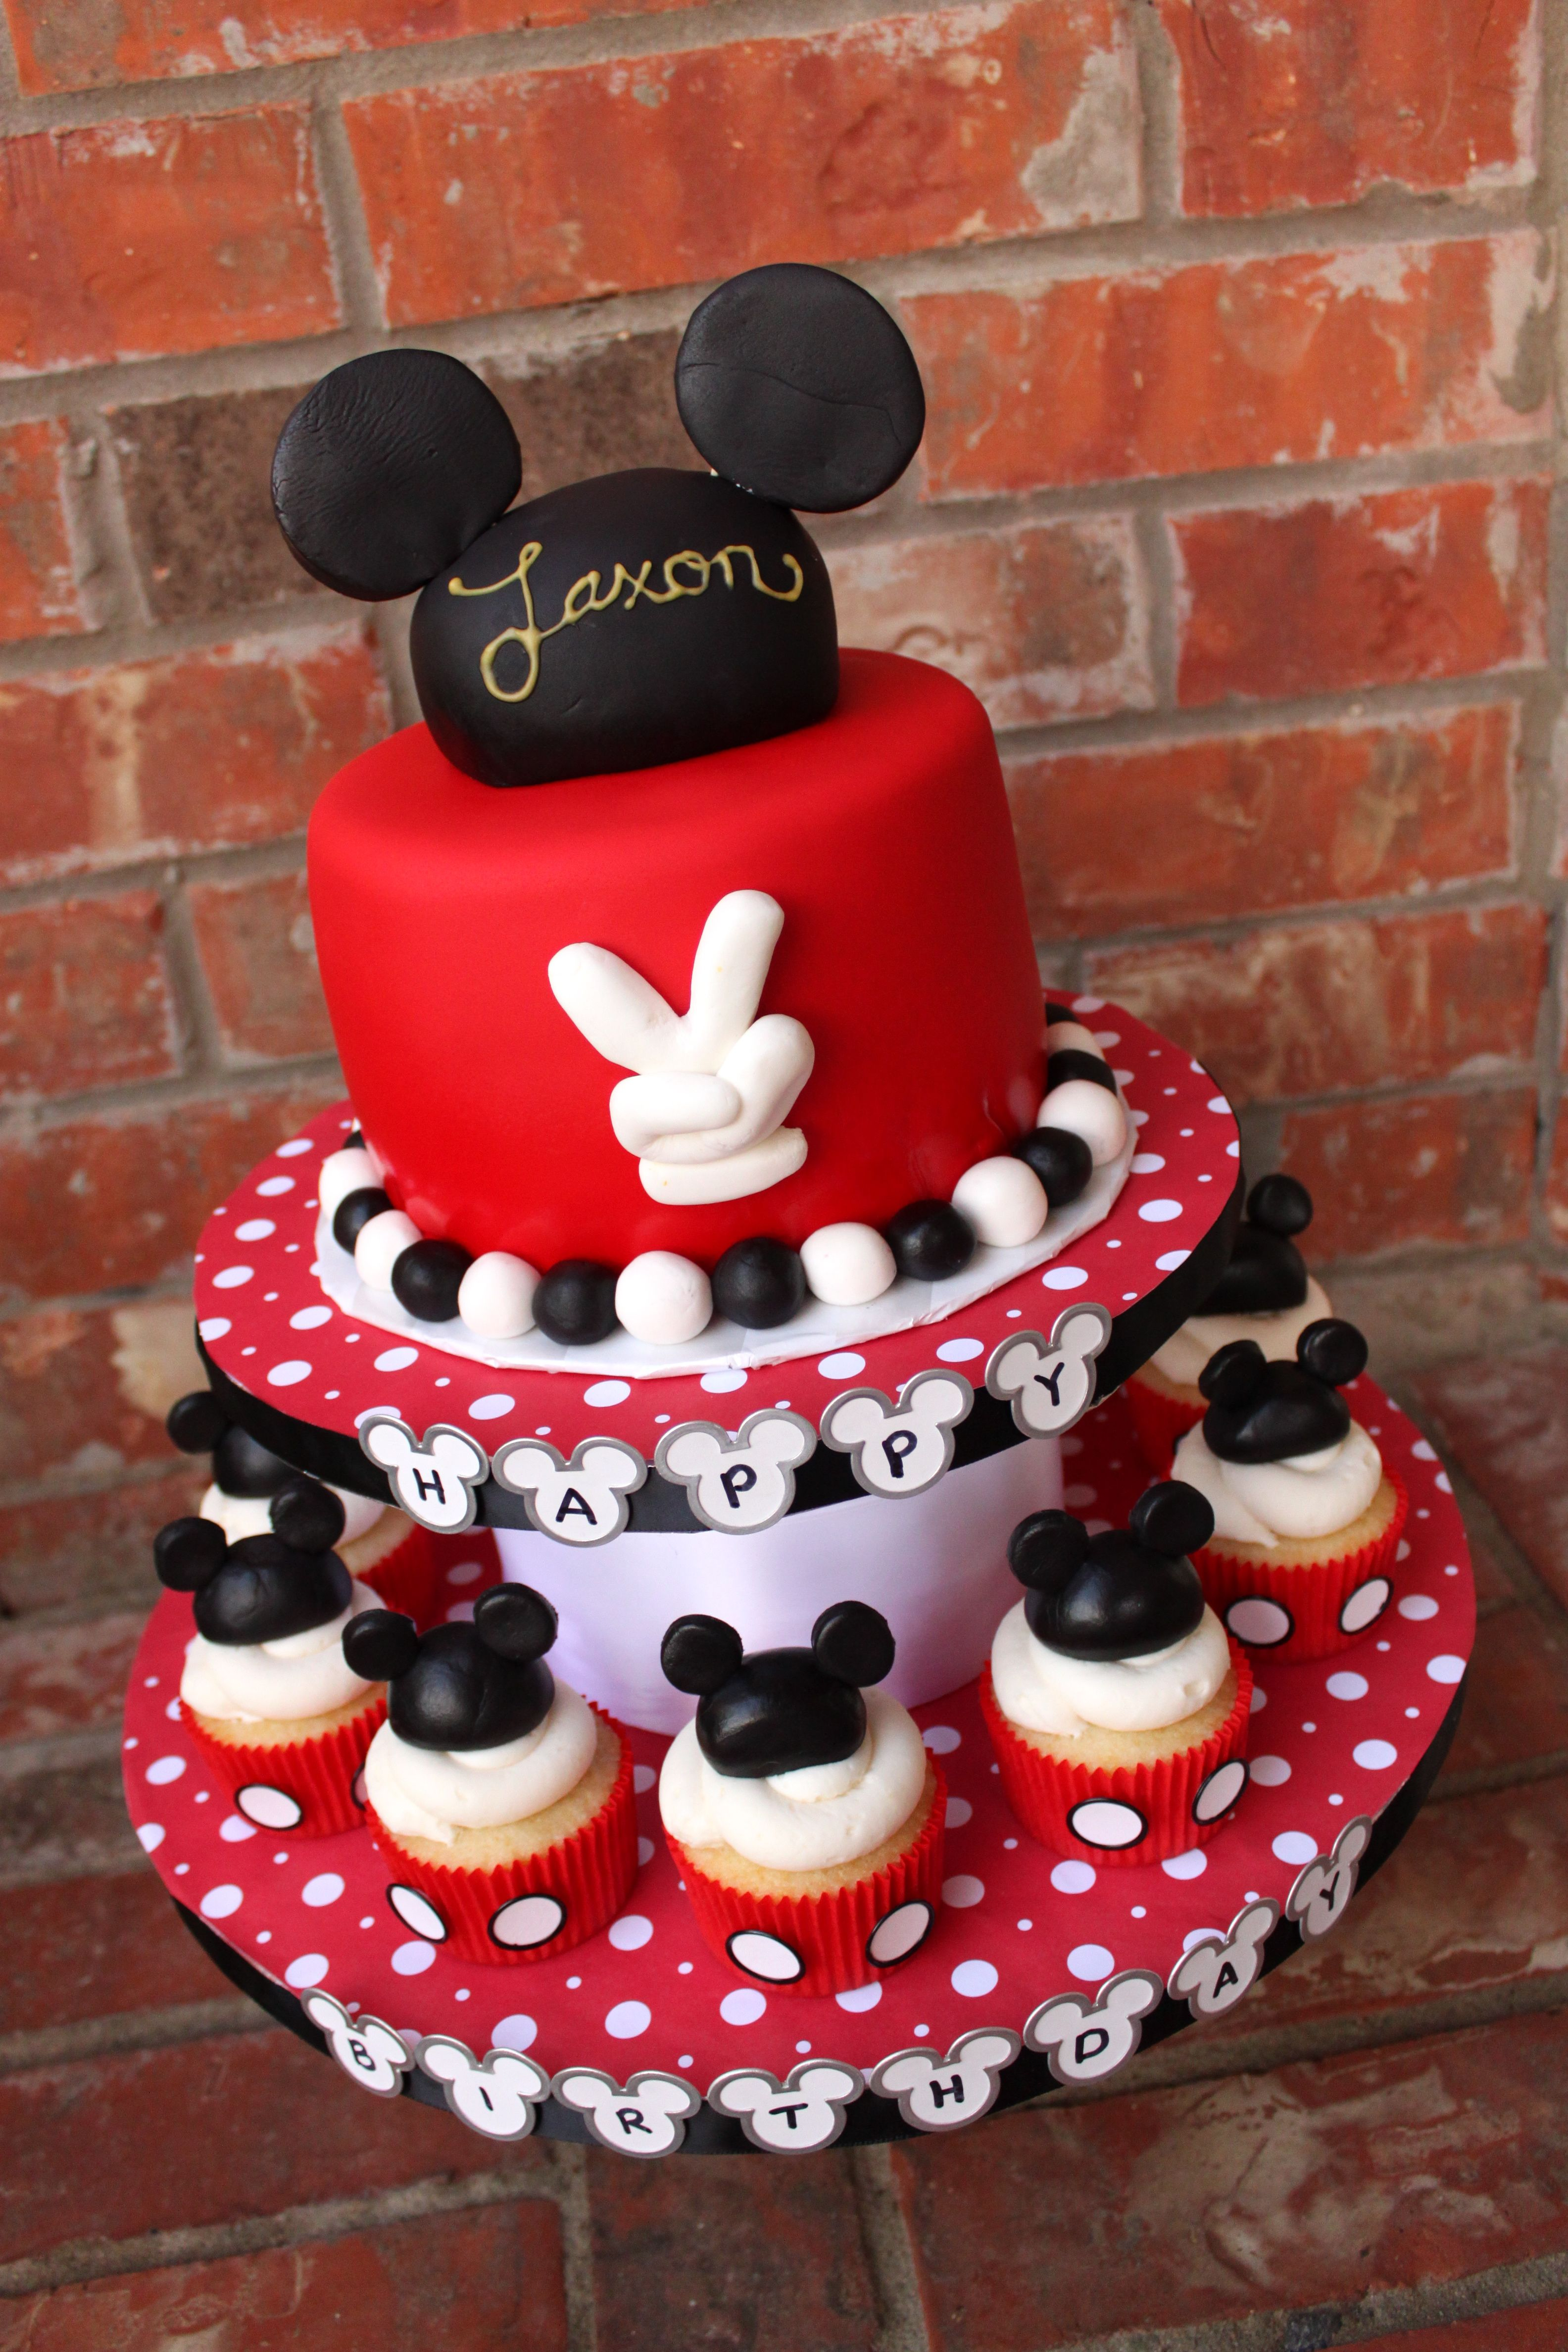 How To Make Meky Mouse Kake Home Concepts Ideas Mickey Mouse B